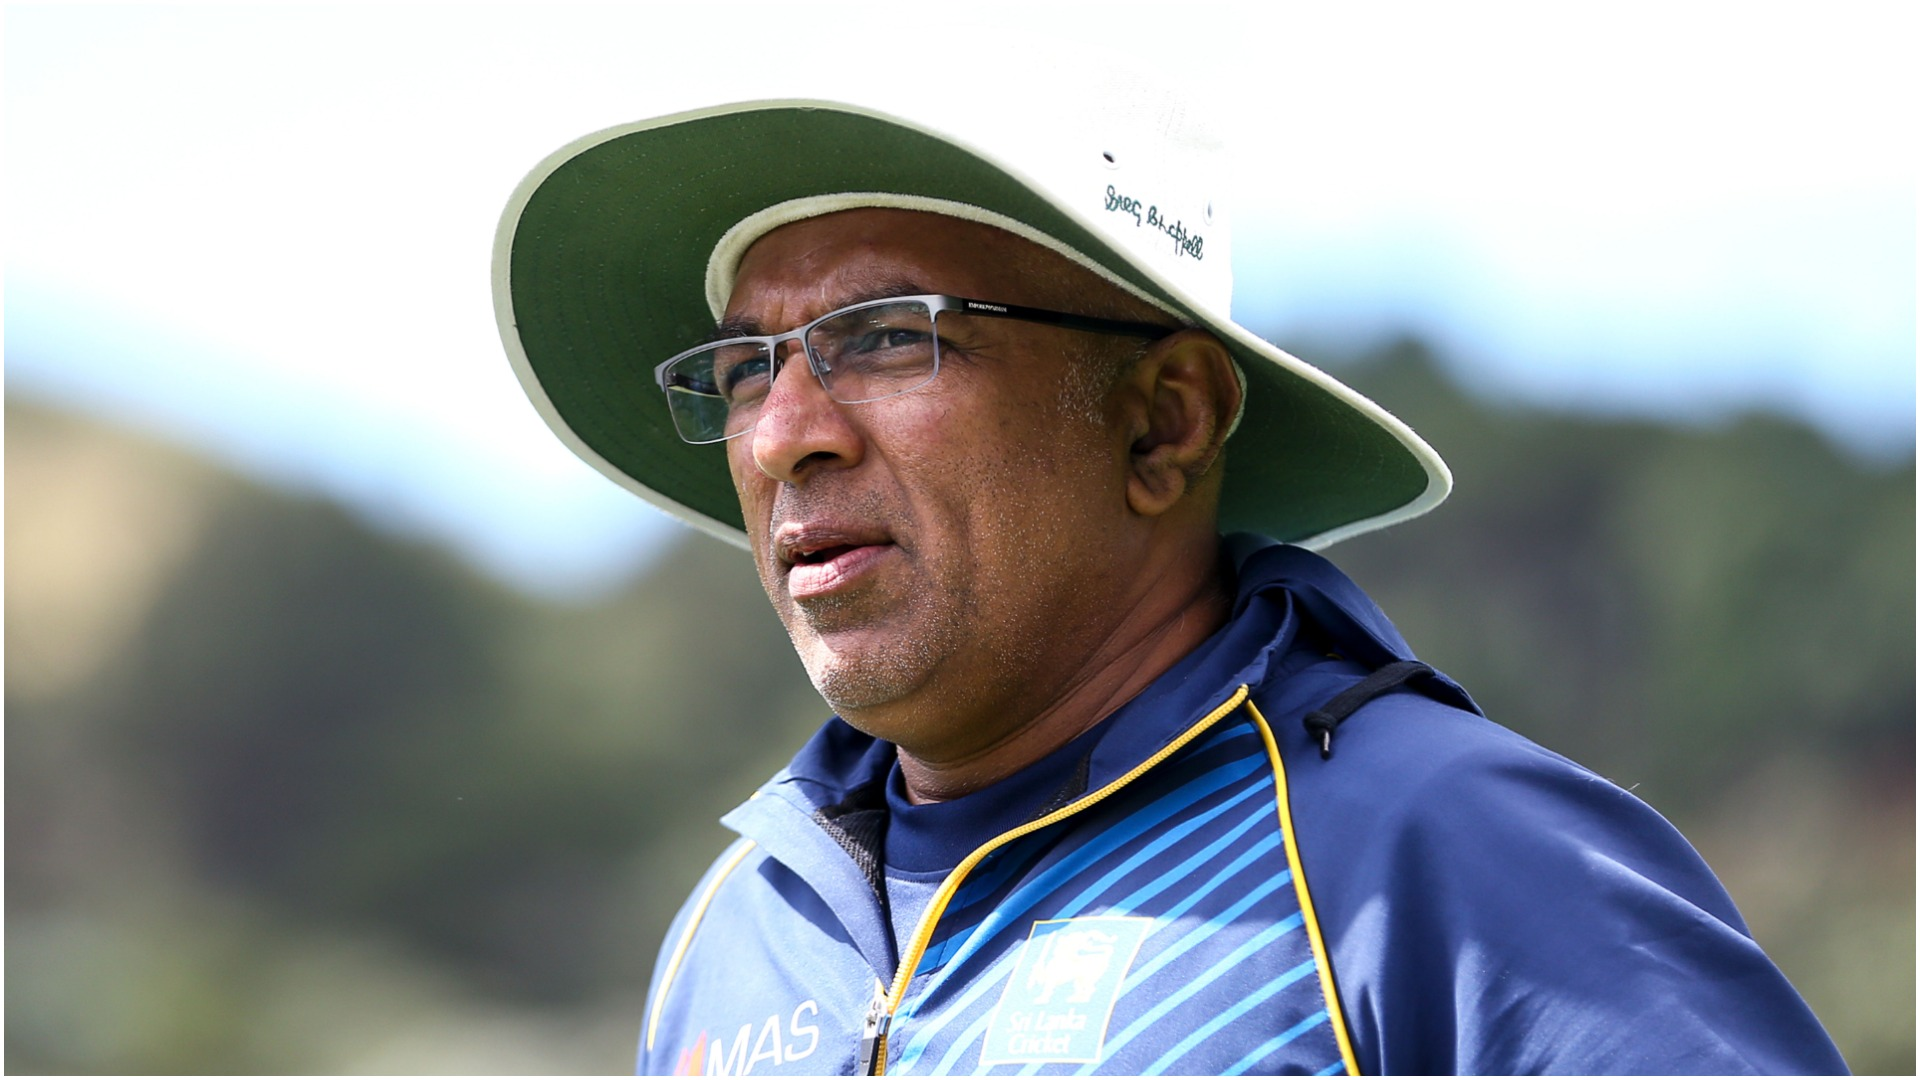 As pressure builds on Chandika Hathurusingha, he is set to return to Sri Lanka and miss the T20 international series with South Africa.